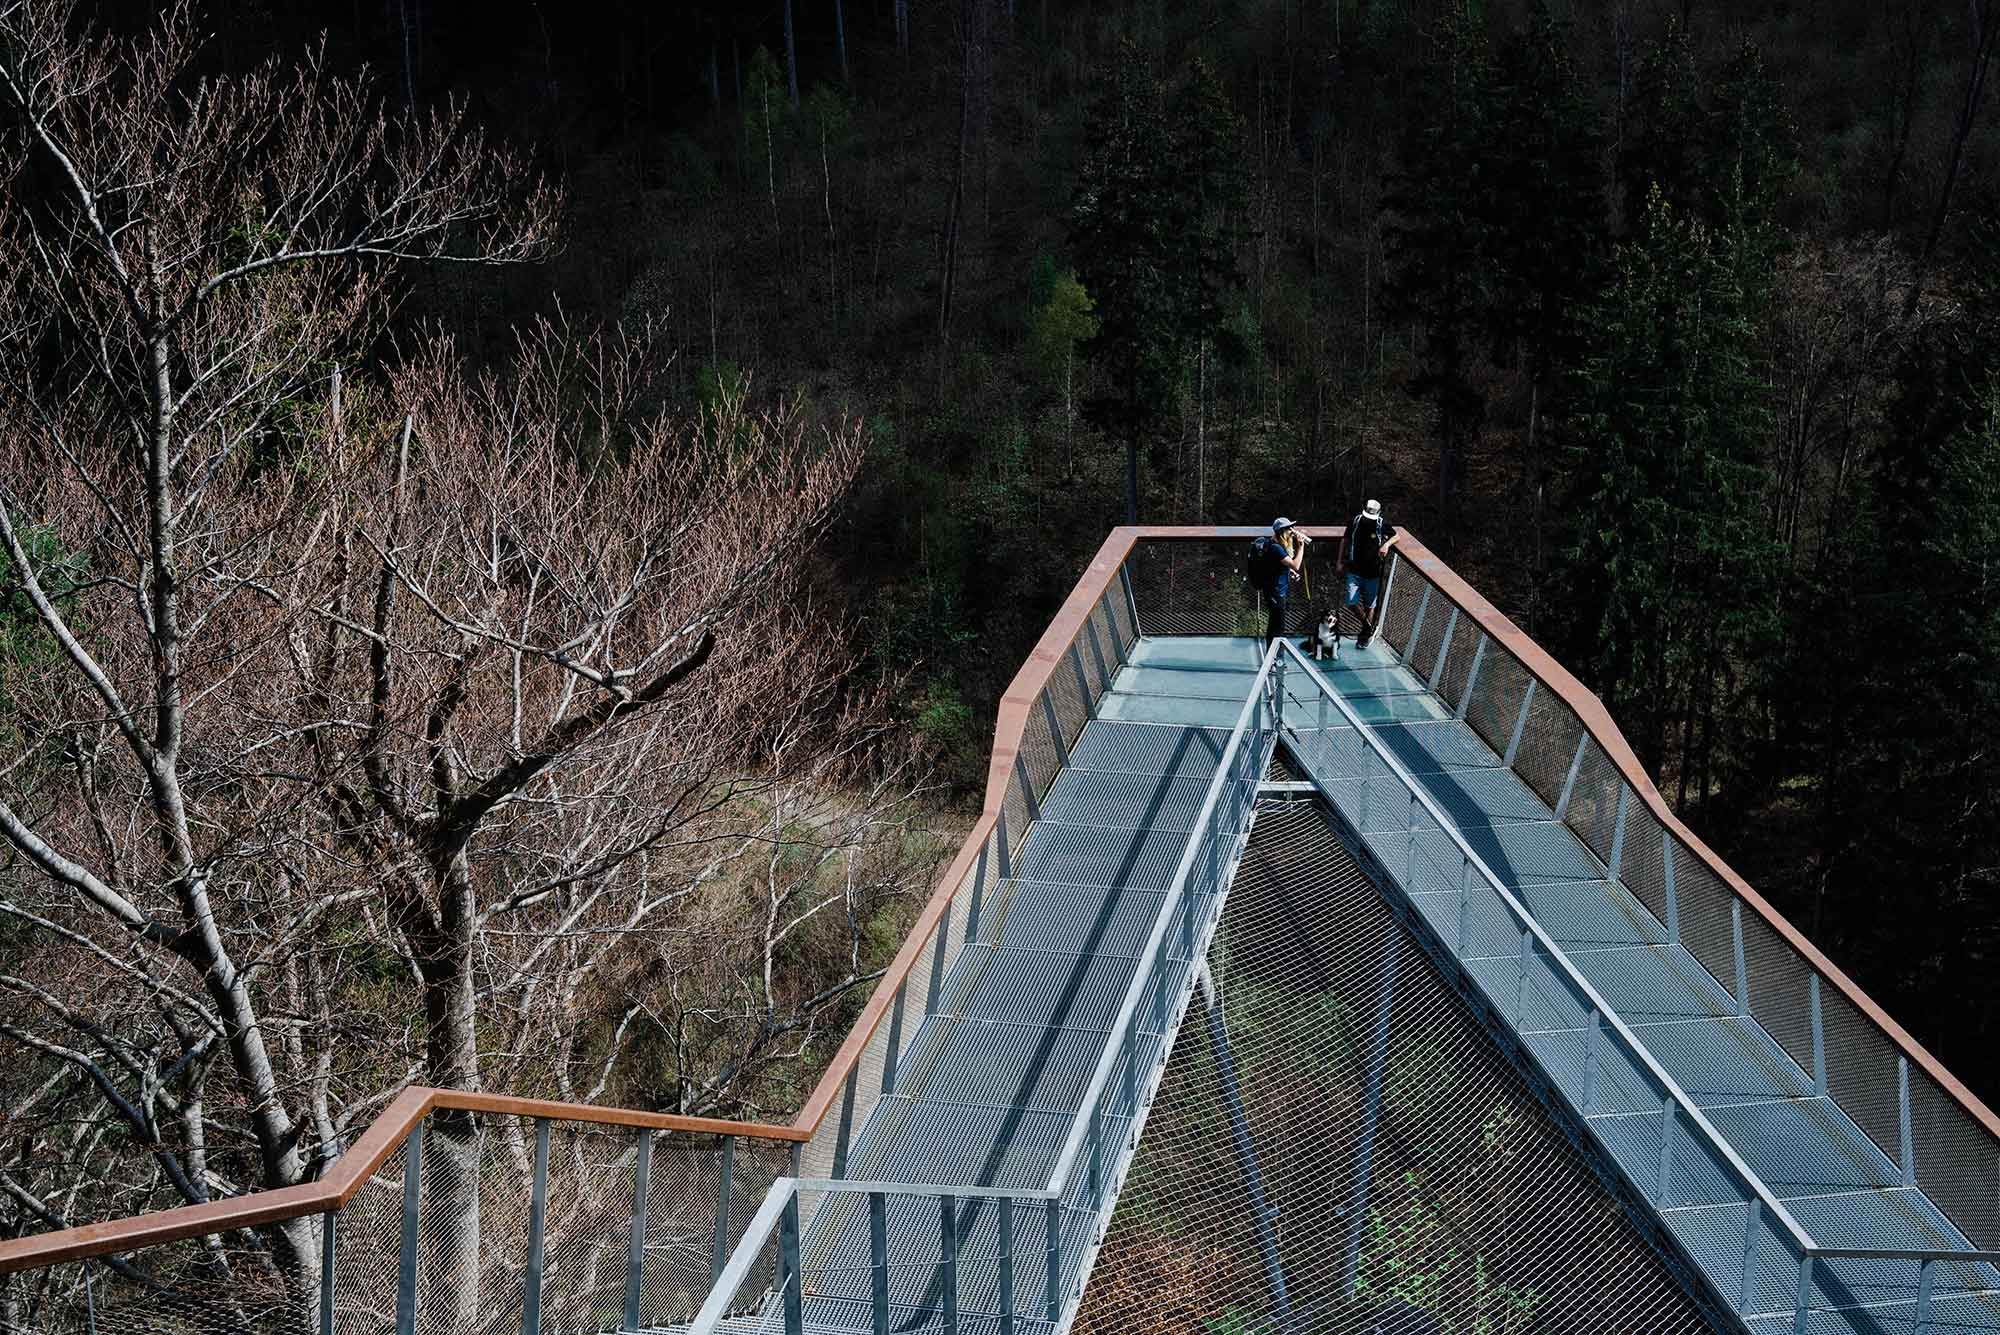 A man and woman stand on the Drachenfelsen Observation Deck in Innsbruck, Austria